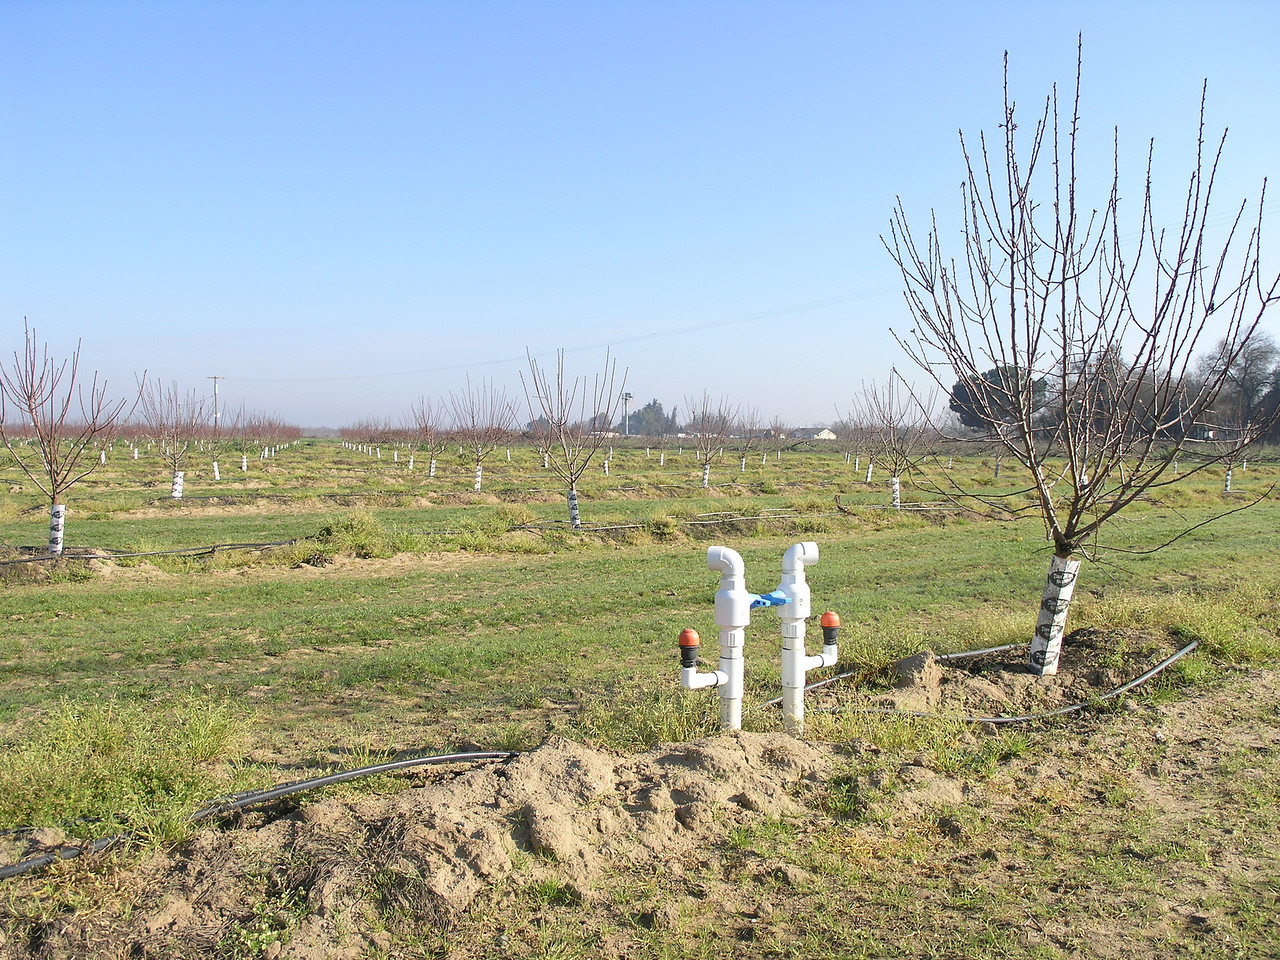 This is anothner young orchard with the drip system showing.